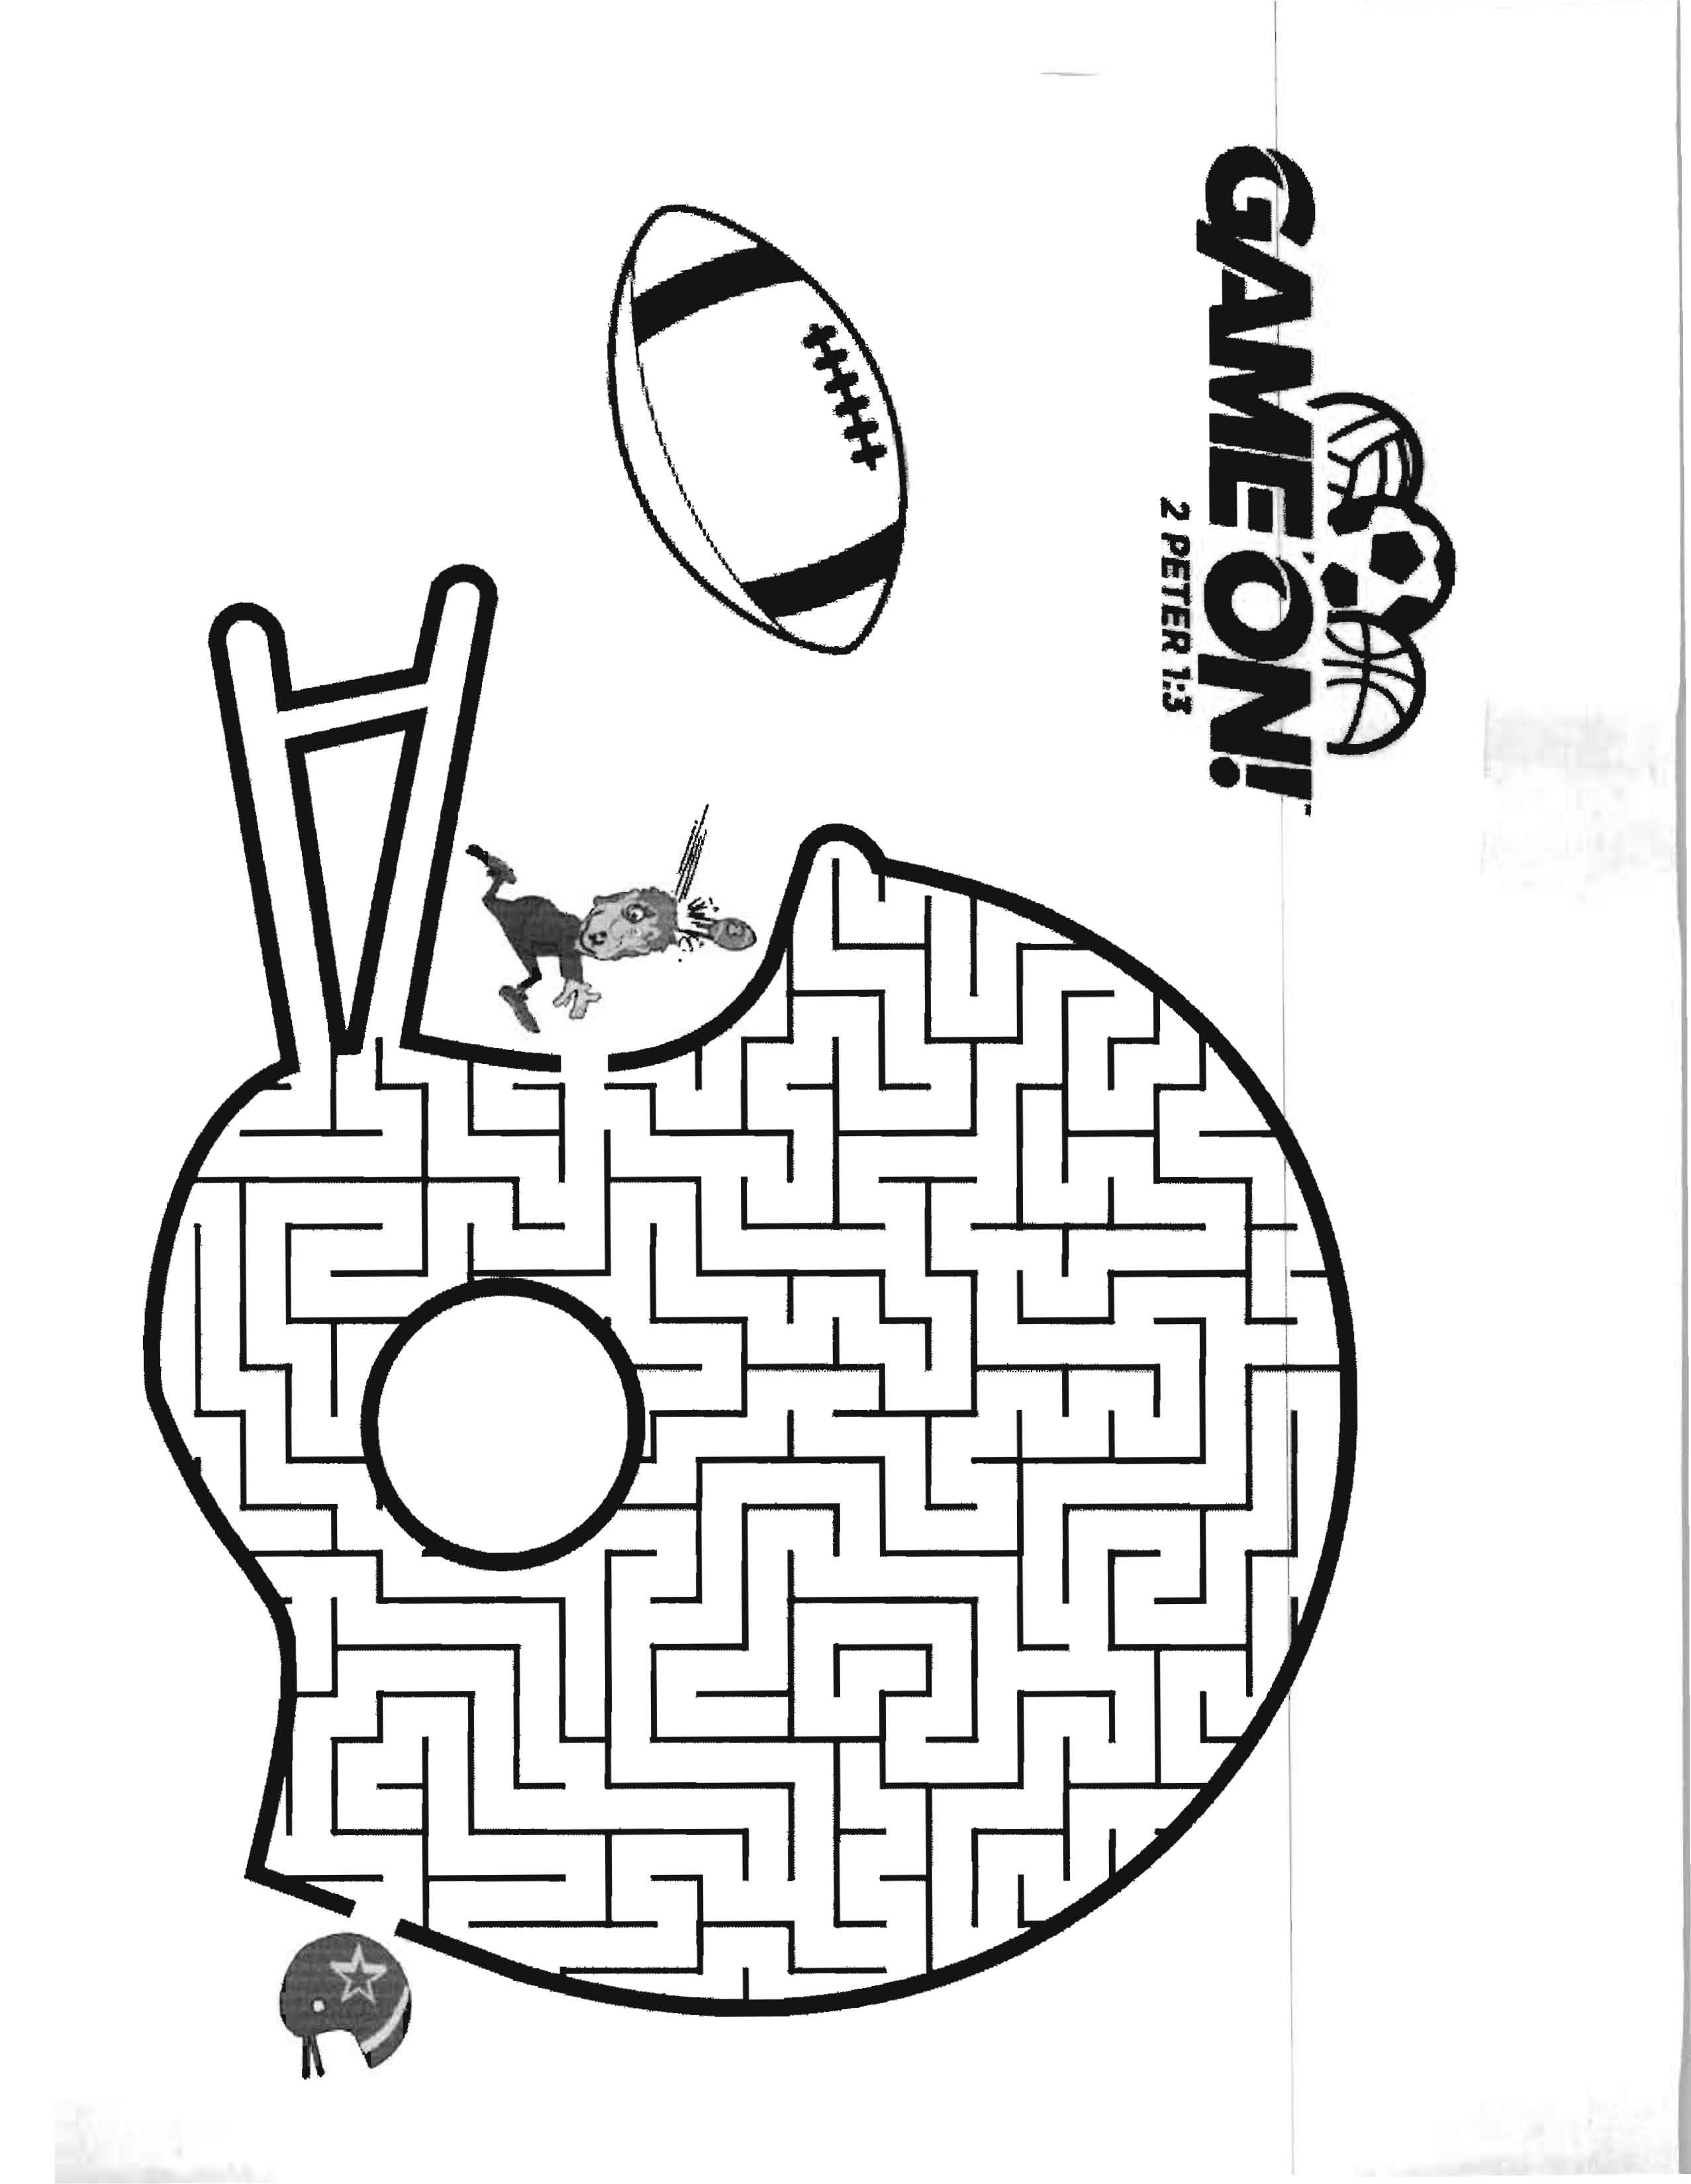 bible games coloring pages - photo#30